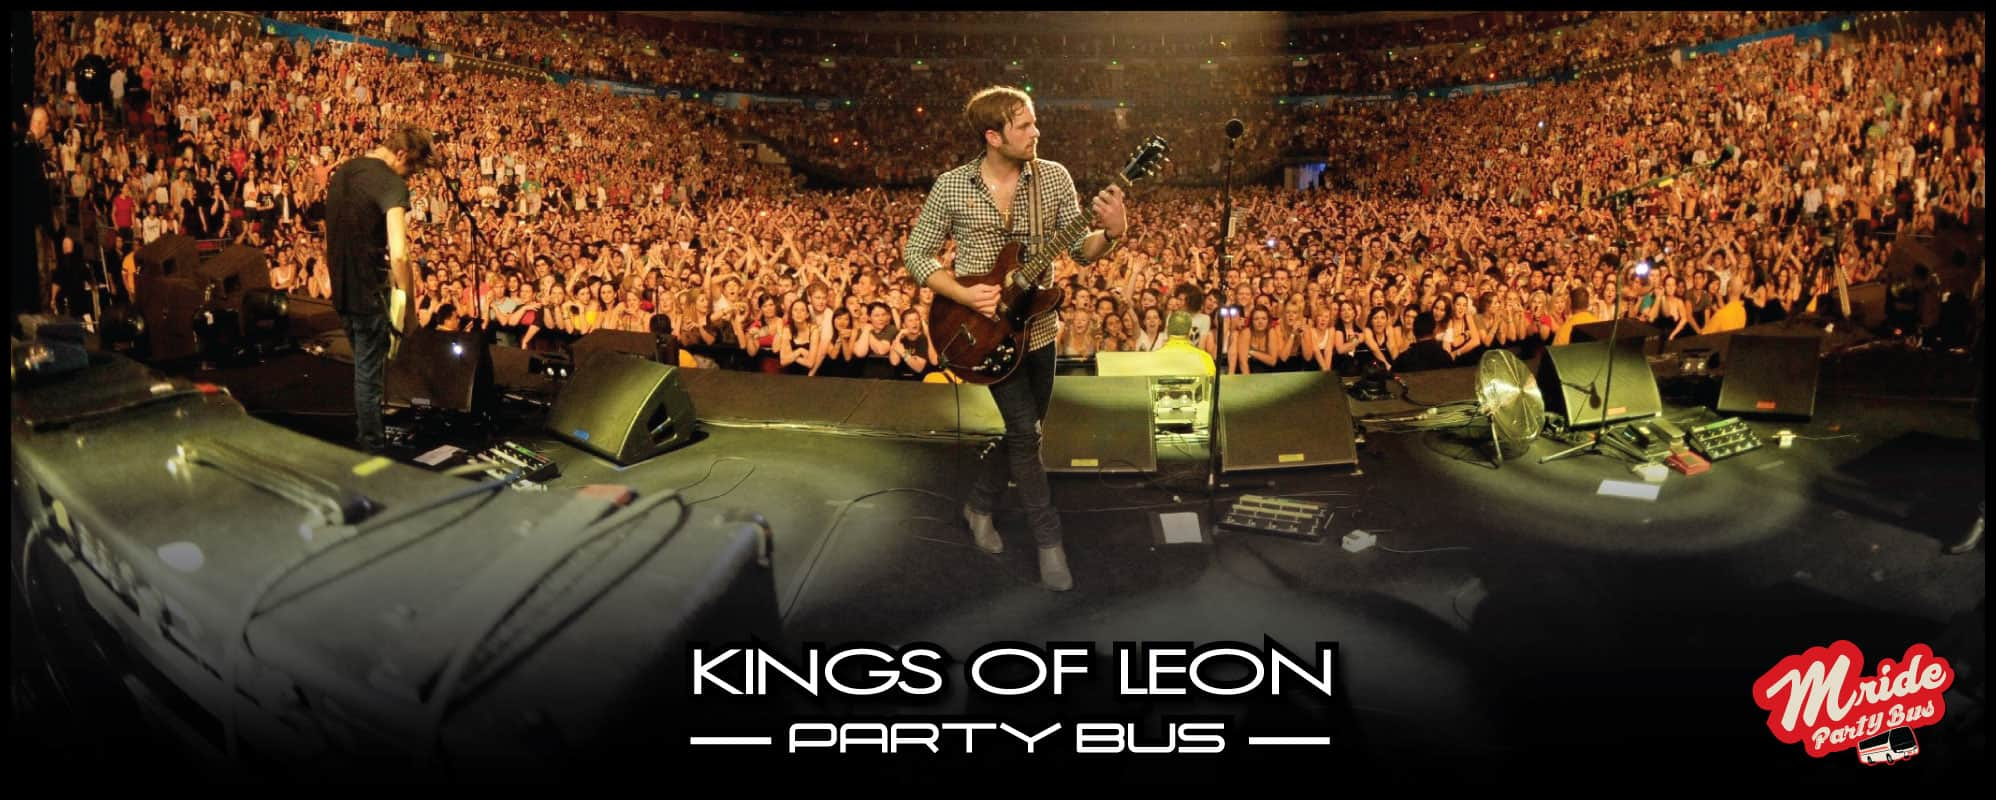 Kings of Leon Party Bus